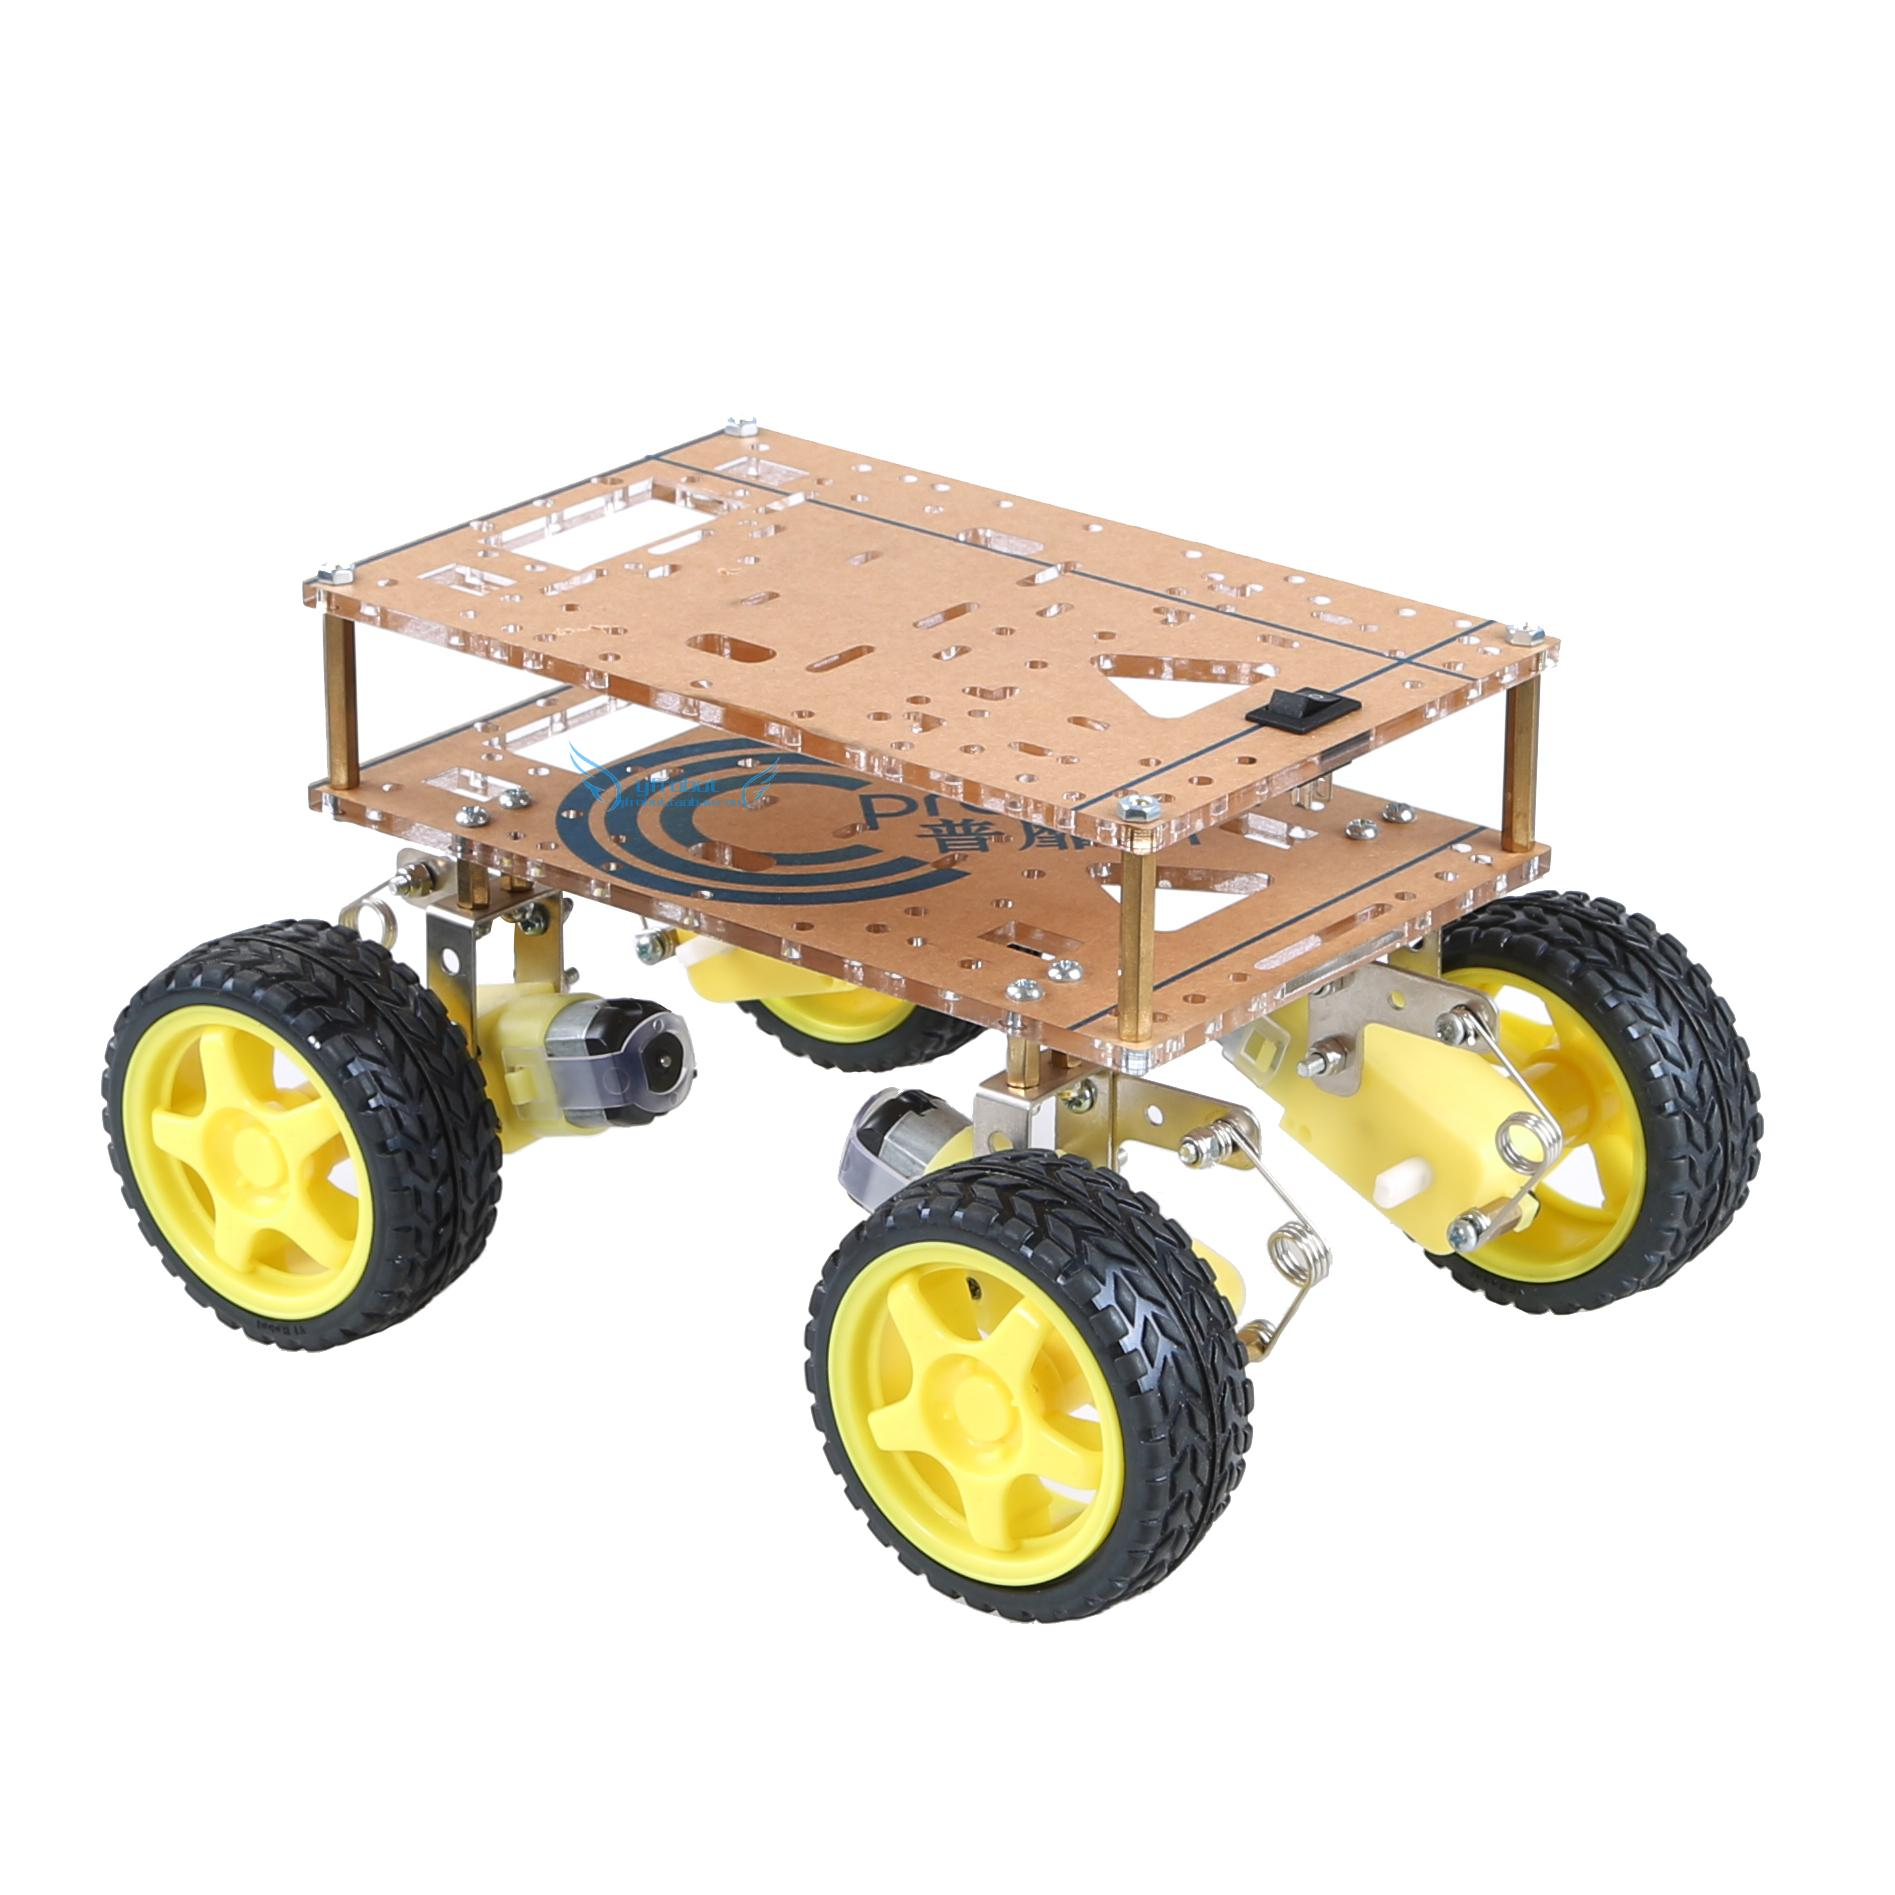 4WD Suspension Robot Car Chassis 5kg Load Intelligent Shock Absorption Free Battery Box For Arduino Wifi DIY Parts